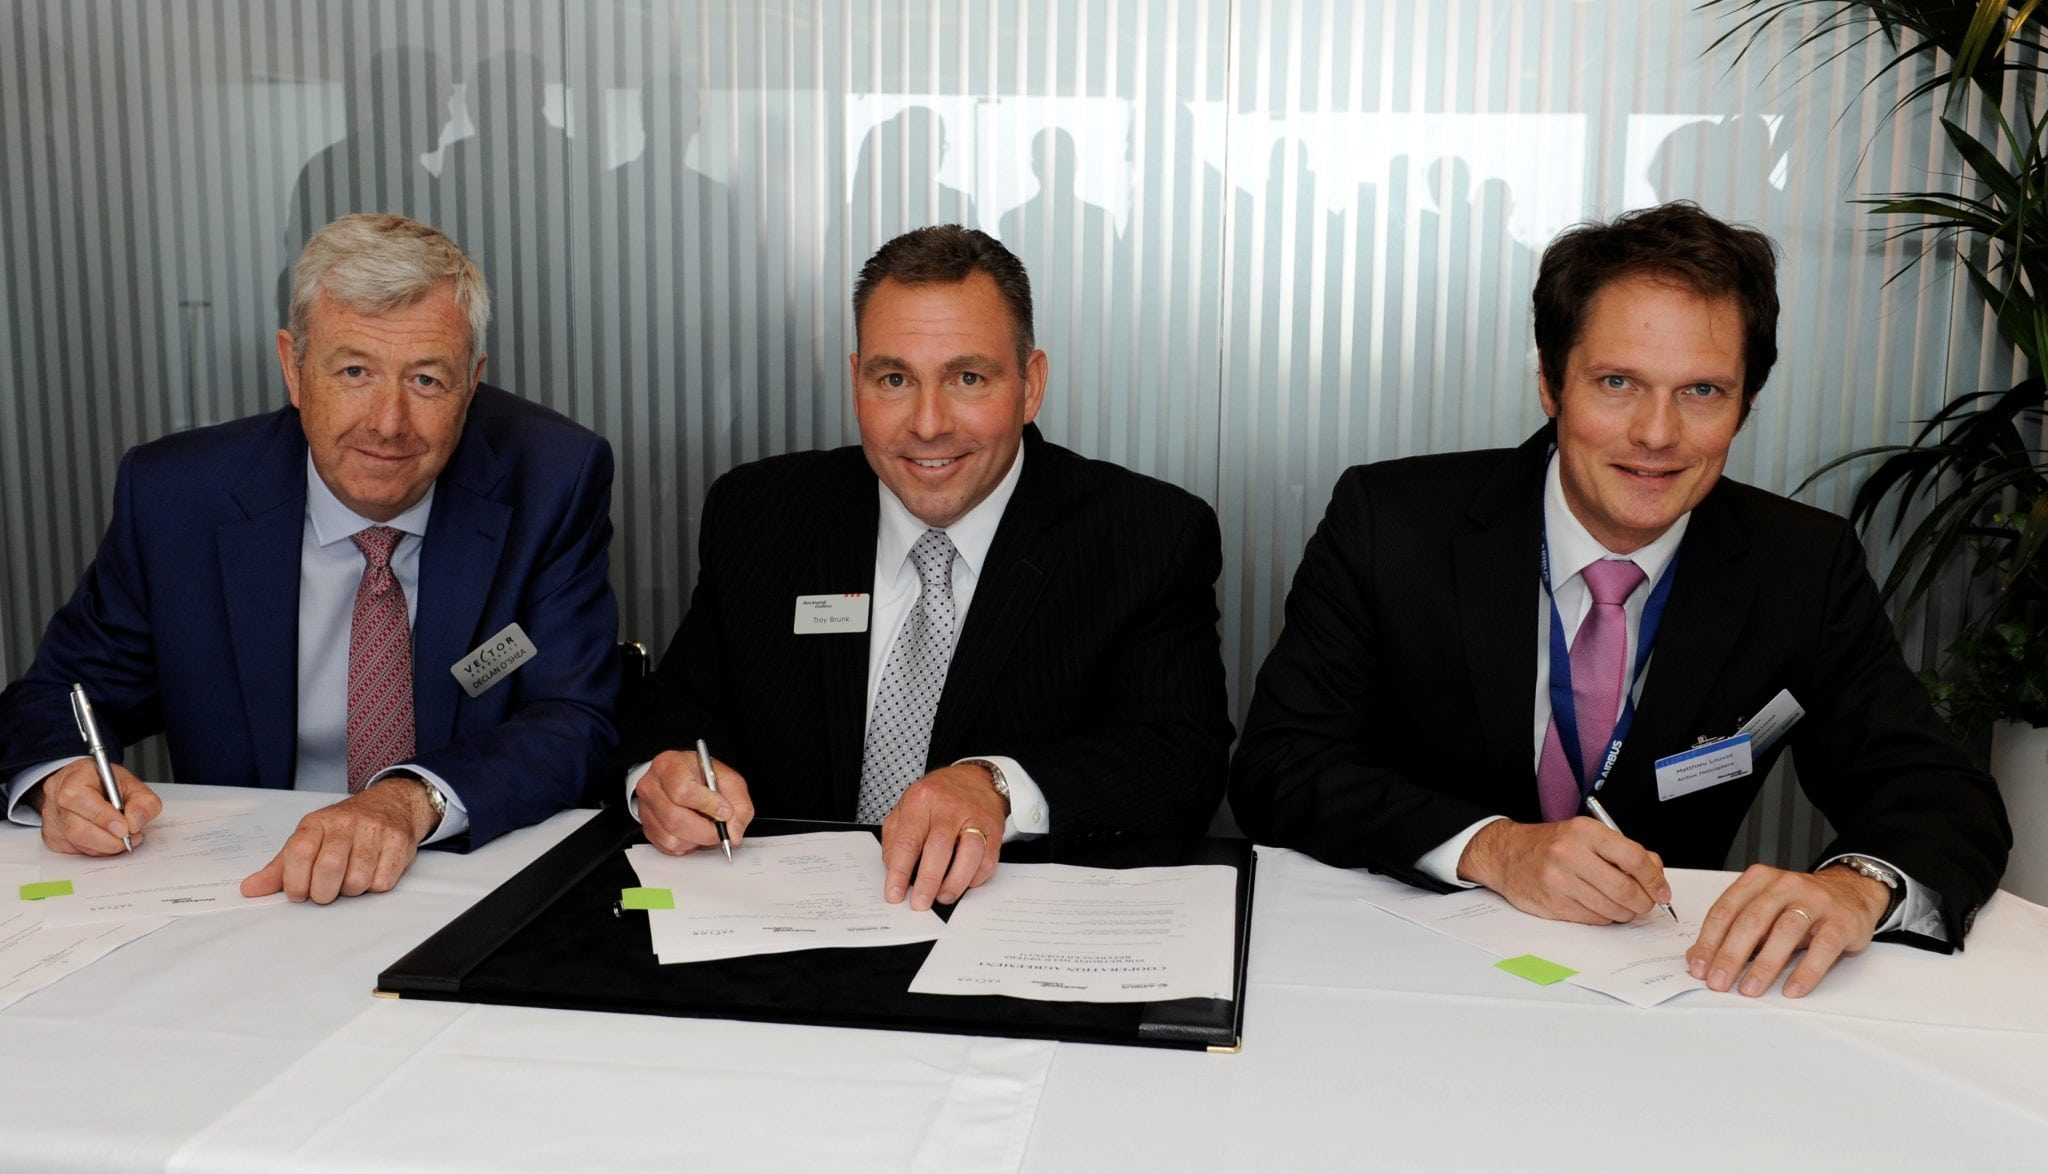 Representatives from Rockwell Collins, Vector and Airbus sign agreement to develop Pro Line Fusion avionics for Airbus Helicopter platforms